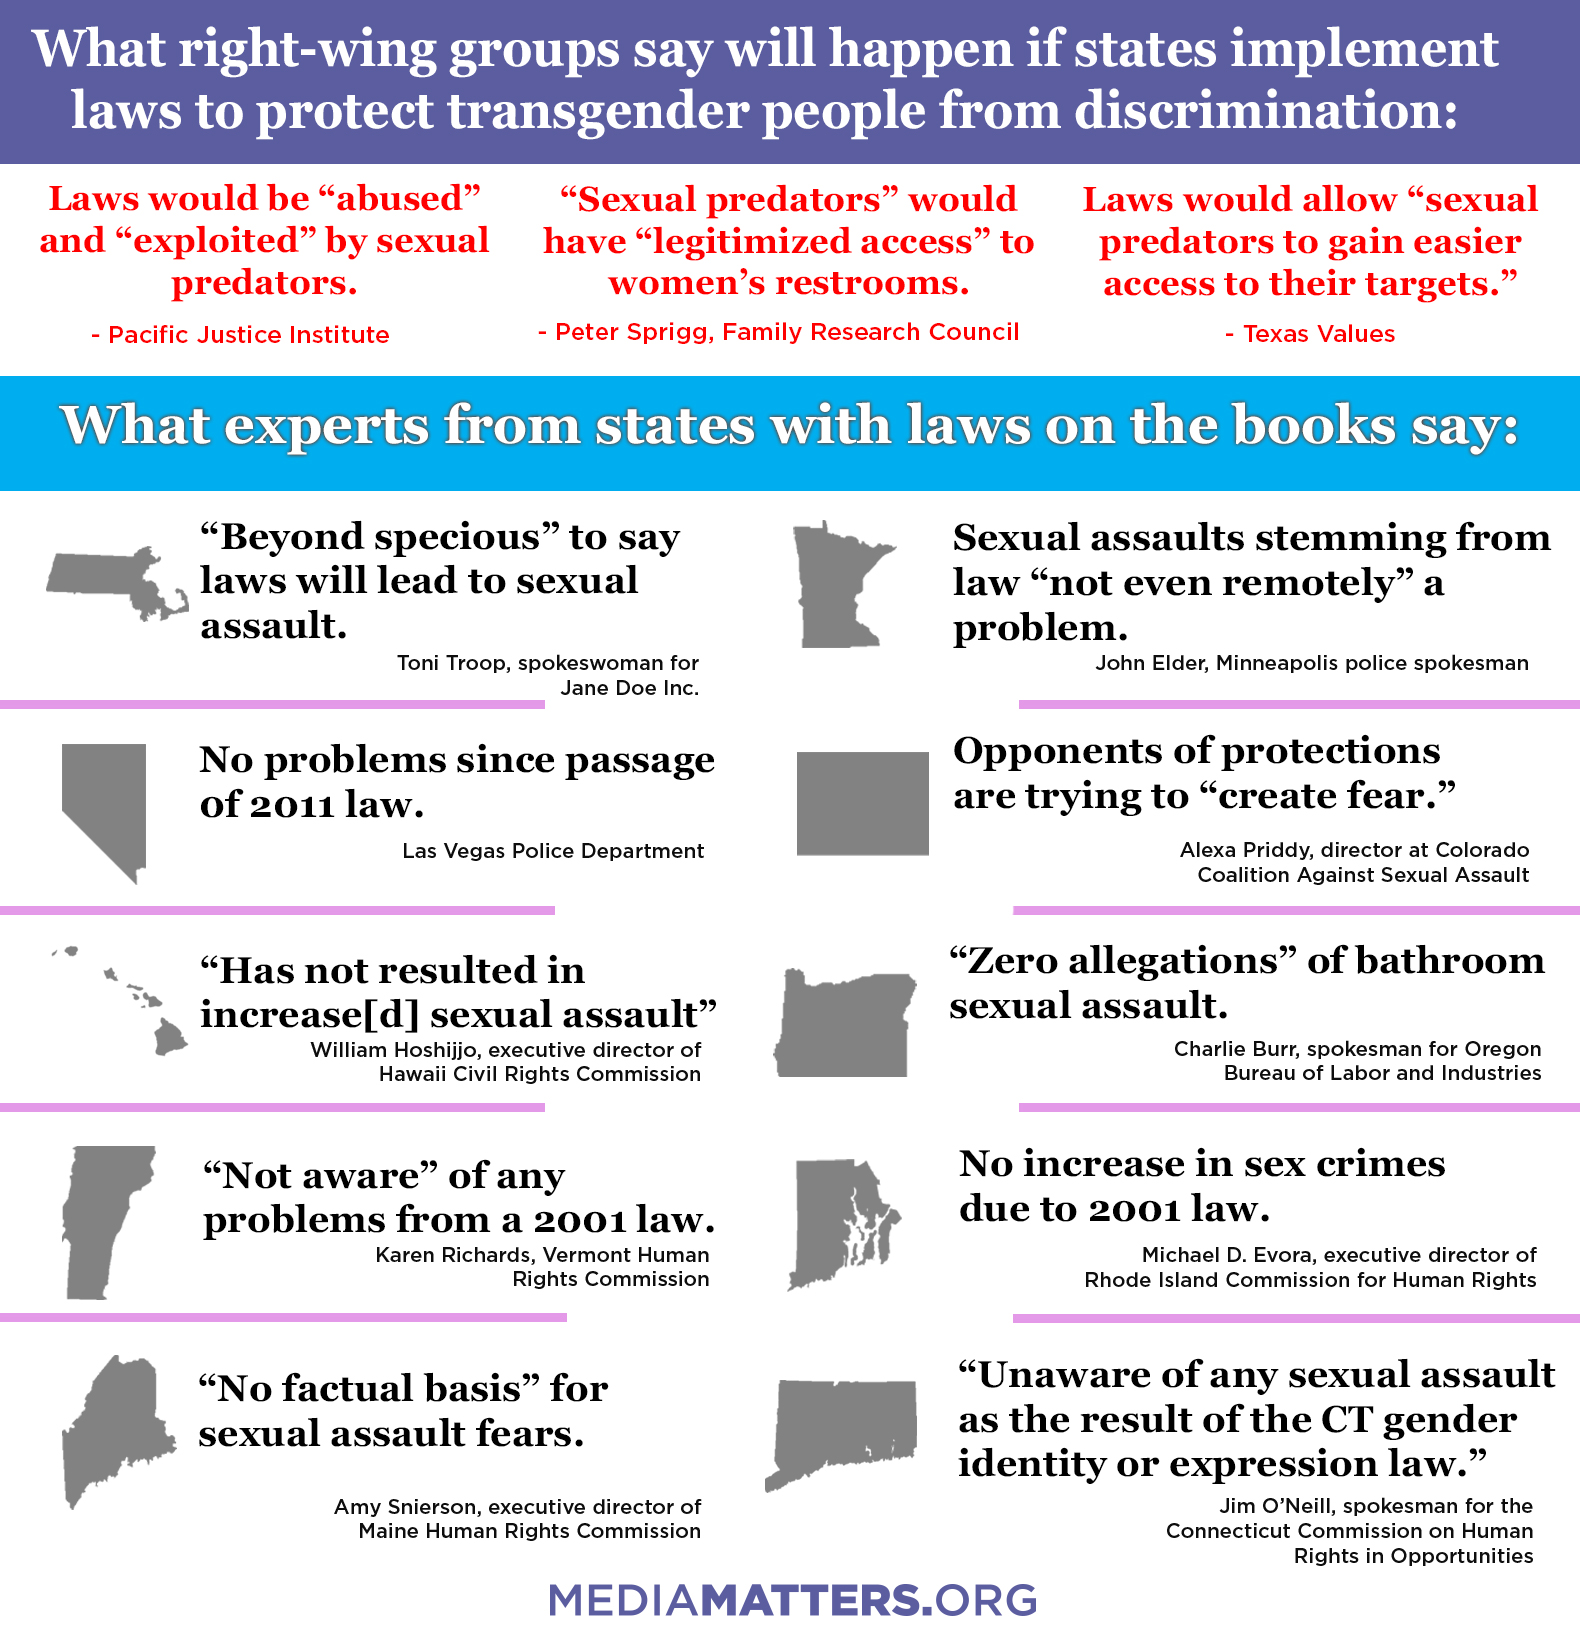 media on transgendered people and social Under current policy, a transgender person can change their gender on their social security records by submitting either government-issued documentation reflecting a change, or a certification from a physician confirming that they have had appropriate clinical treatment for gender transition.